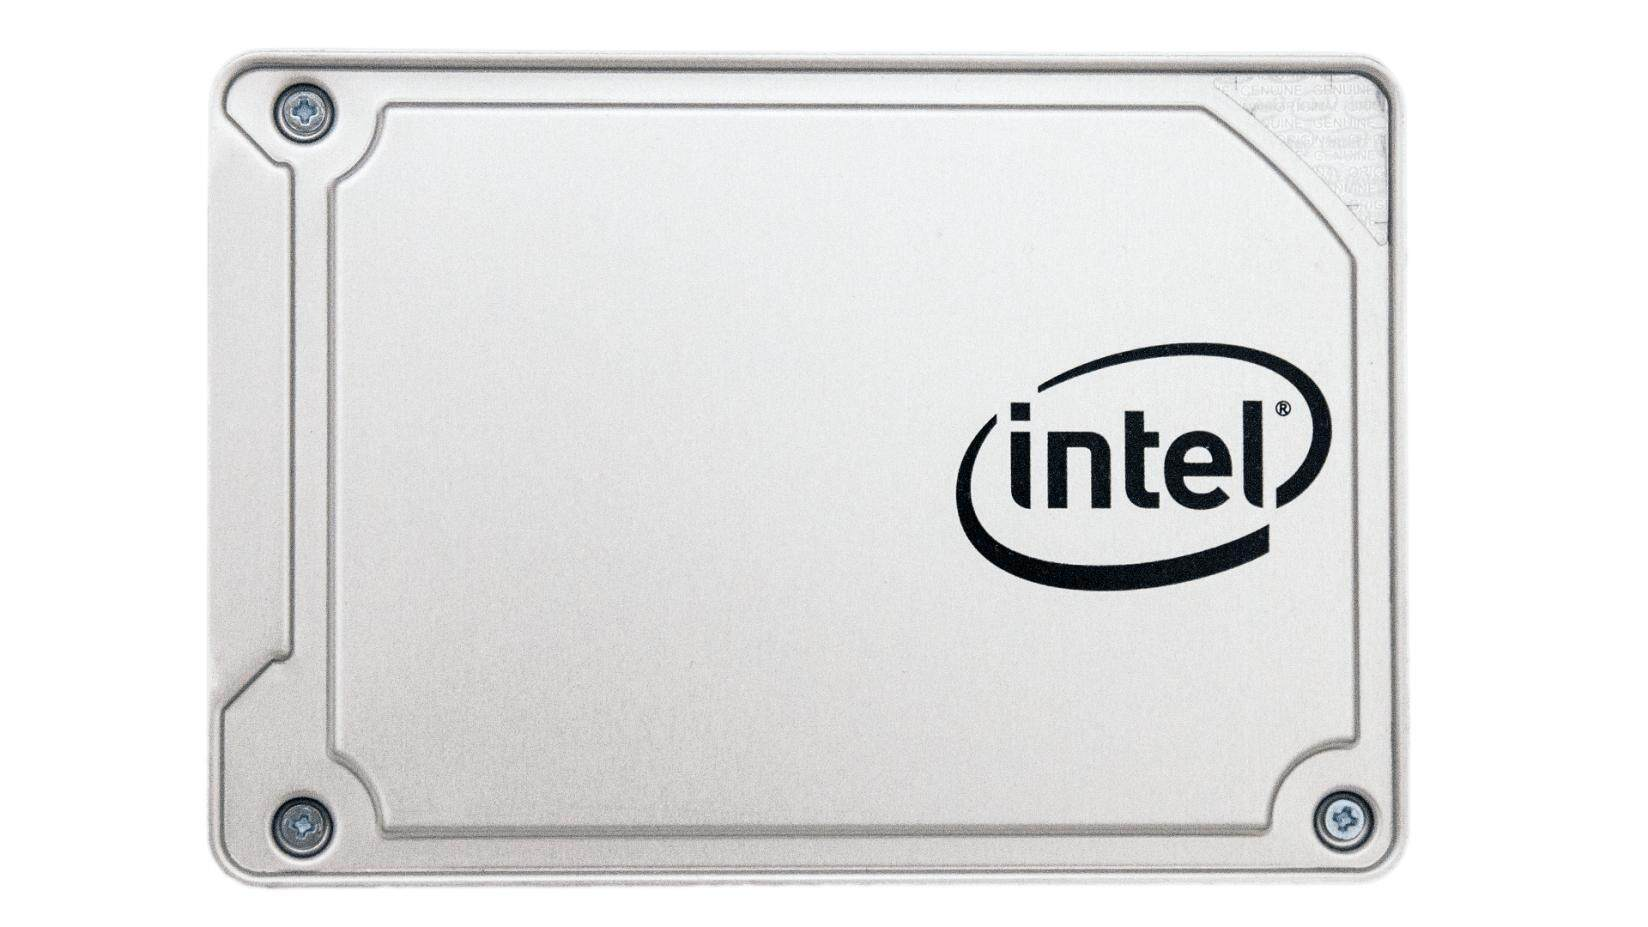 Intel® SSD 545s Series (128GB, M.2 80mm SATA 6Gb/s, 3D2, TLC)